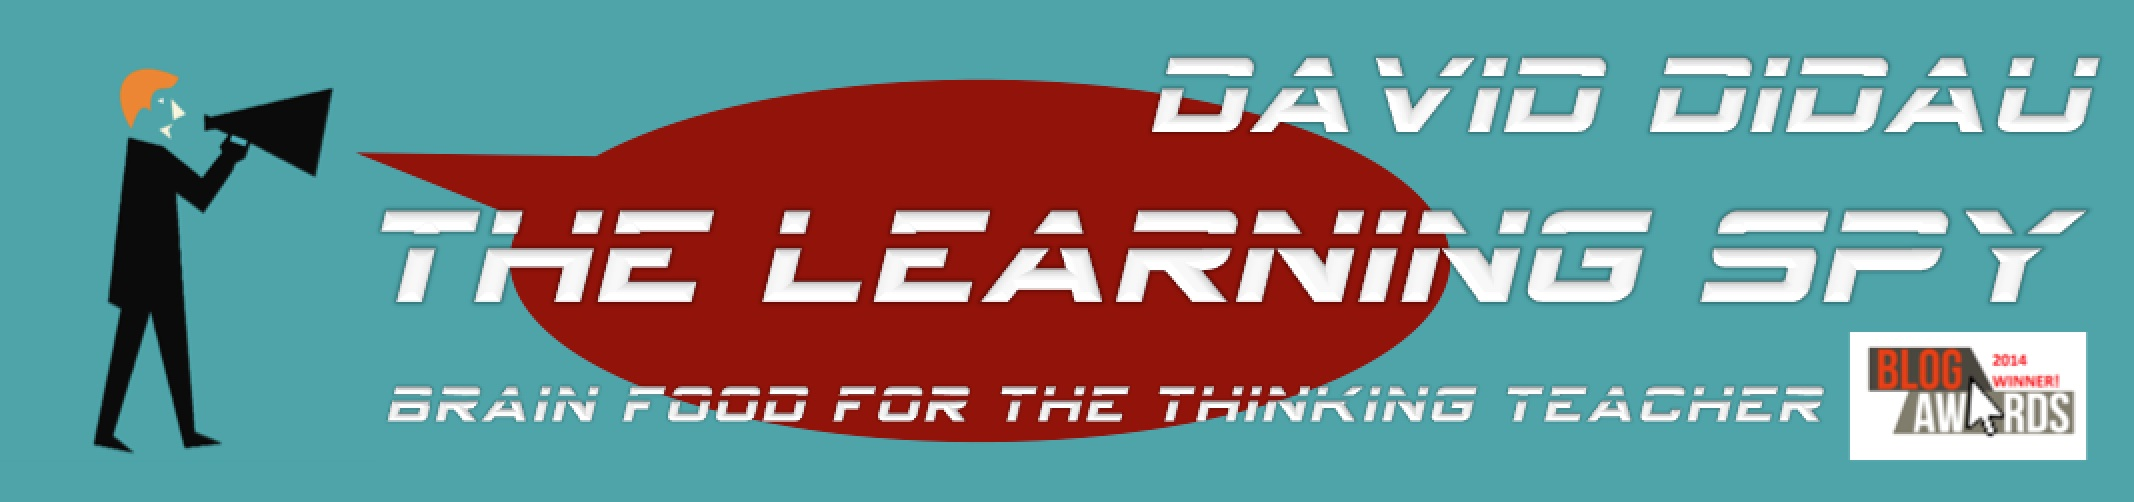 David Didau: The Learning Spy